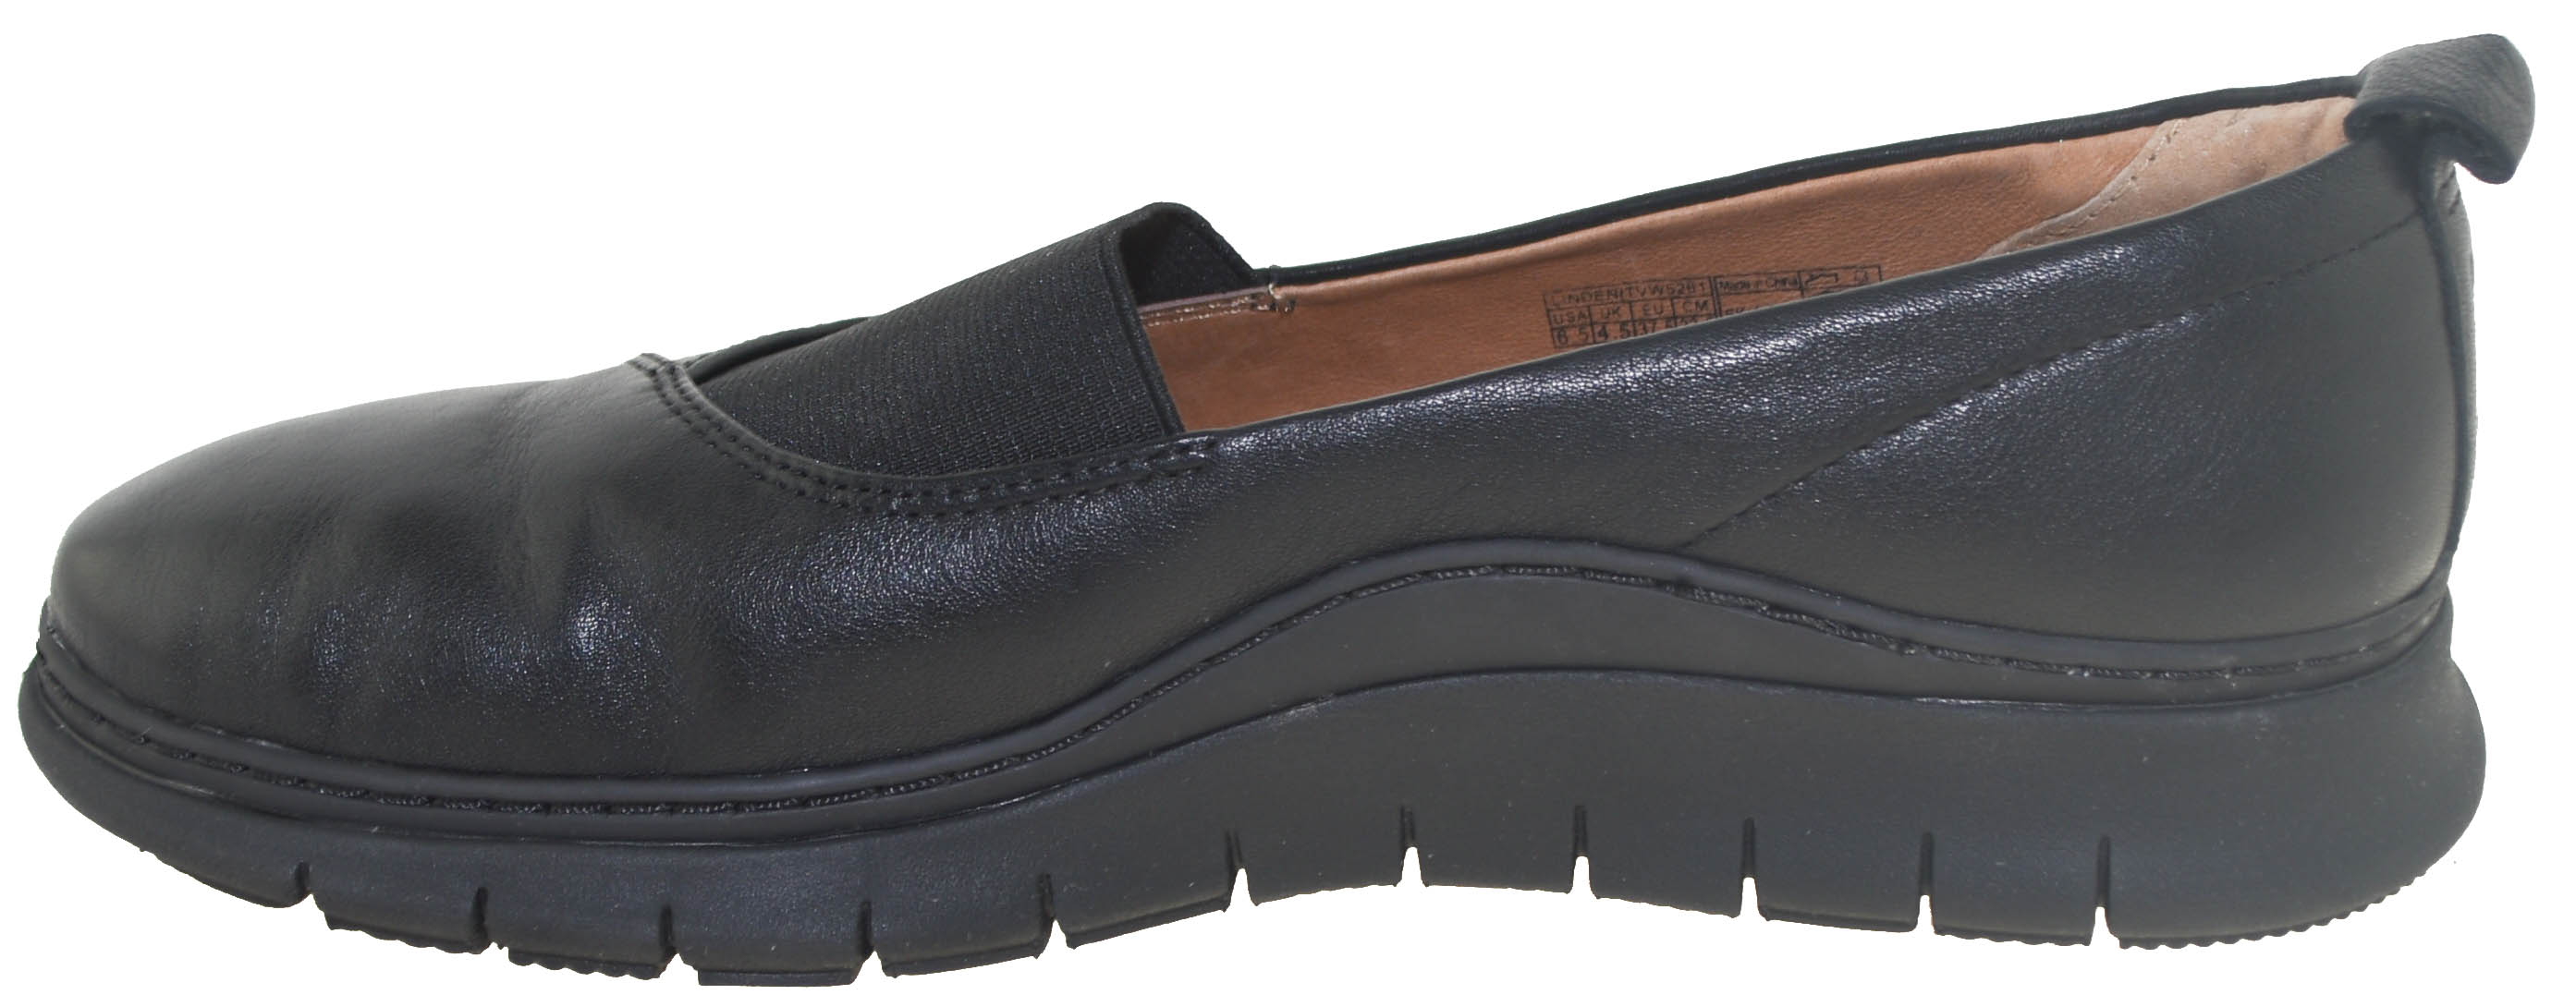 3bf6ba46f00 Vionic Women s Fresh Linden Walking Loafer Black